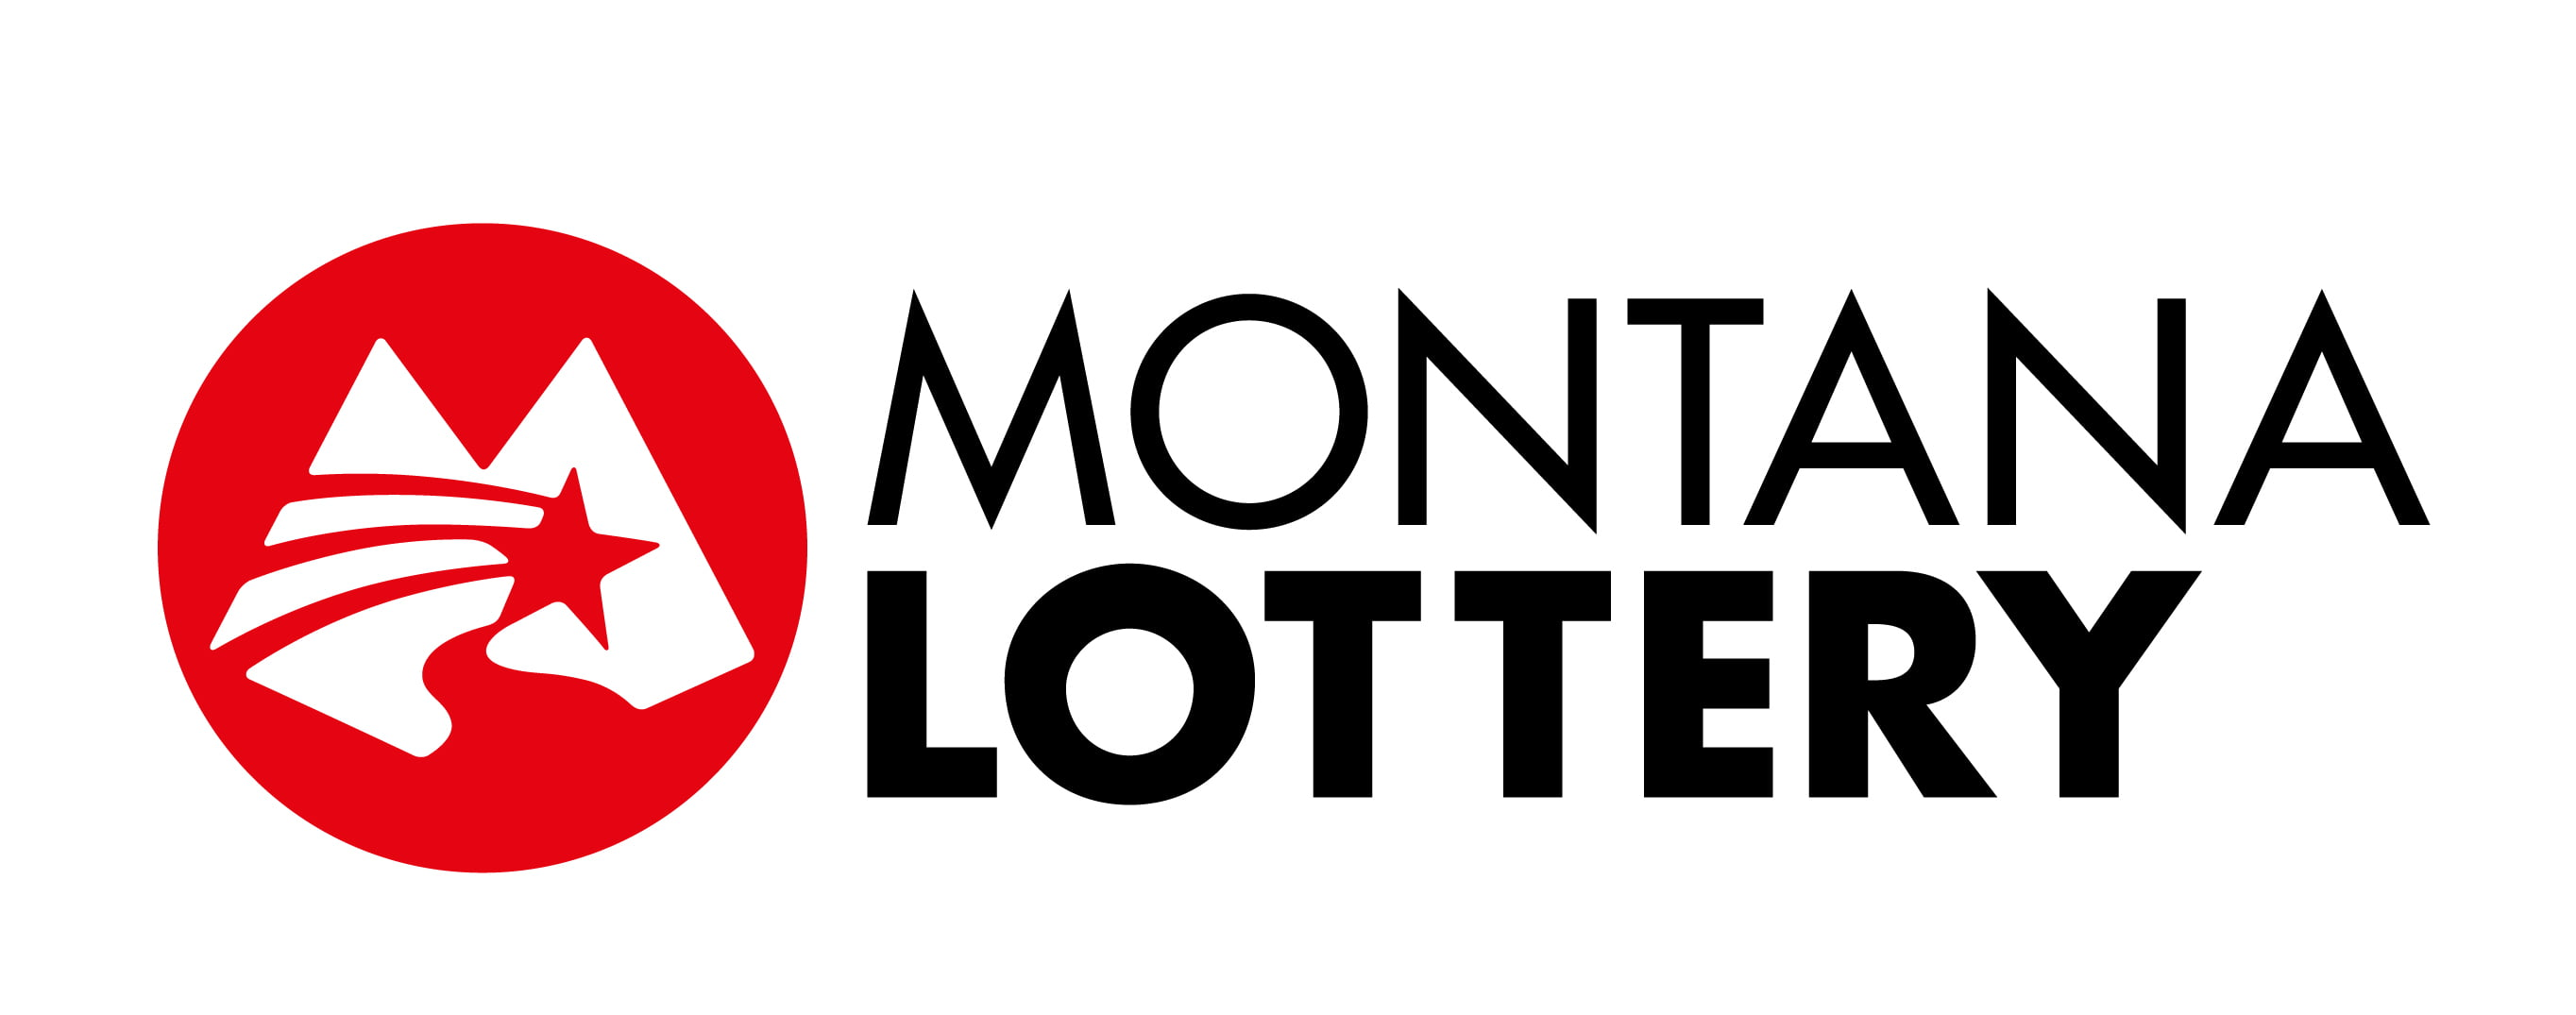 Montana Lottery Sets March Date For Installation Of Betting Kiosks